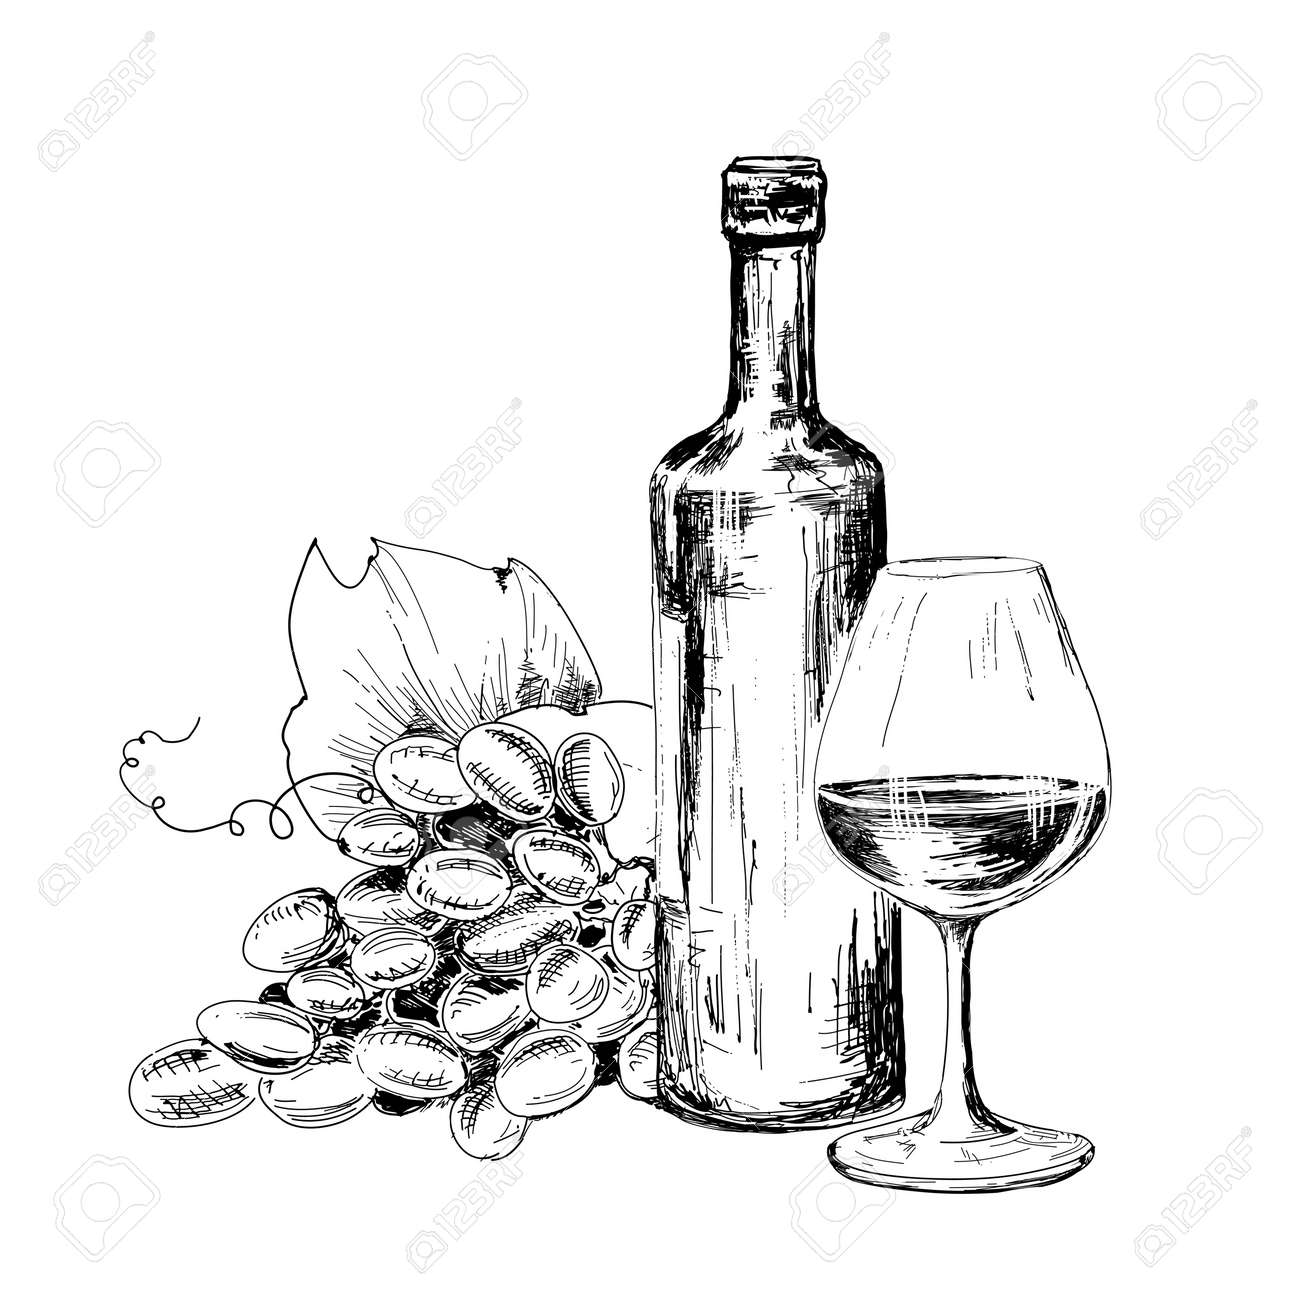 Bottle Of Wine Glass And Grapes Hand Drawn Illustratuin Royalty